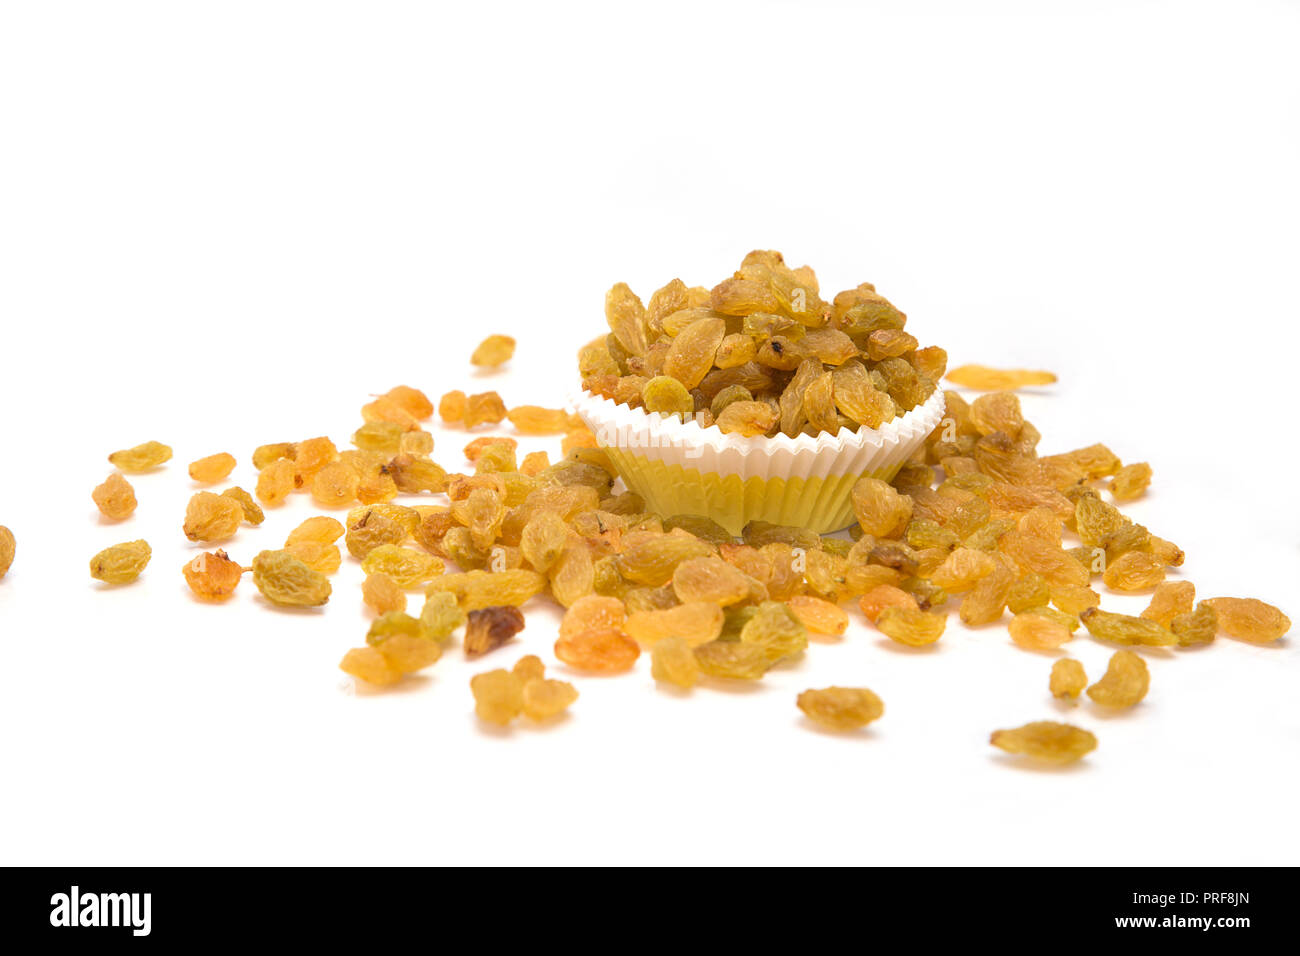 Close Up Of Golden Raisins Or Kishmish In A Bowl On Wooden Surface ... | 956x1300